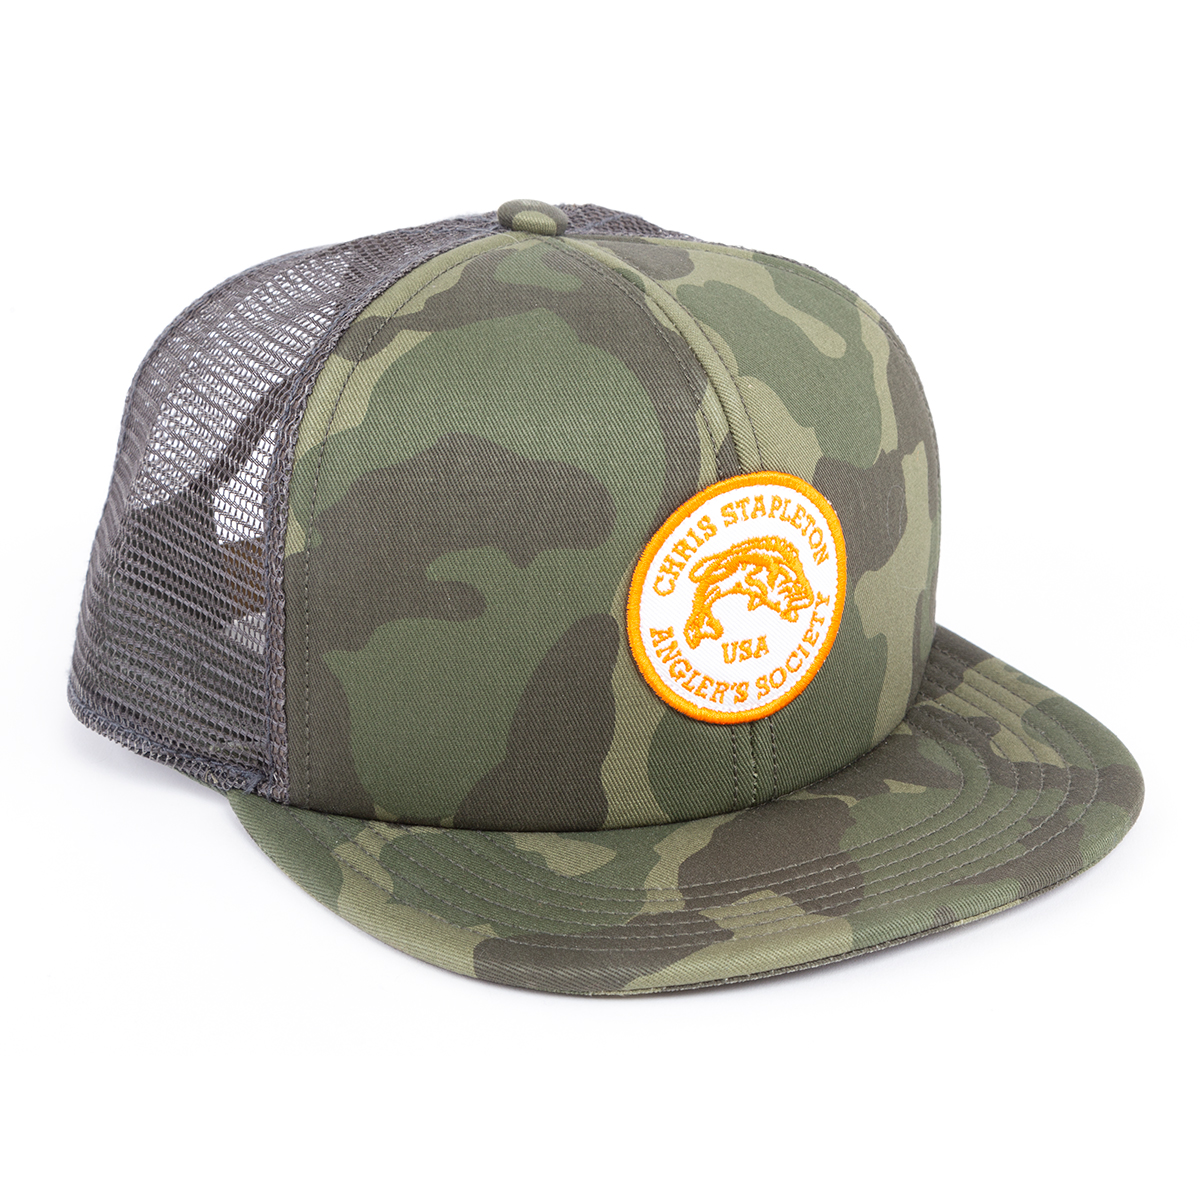 The Hauler Trucker Cap in Green Camo